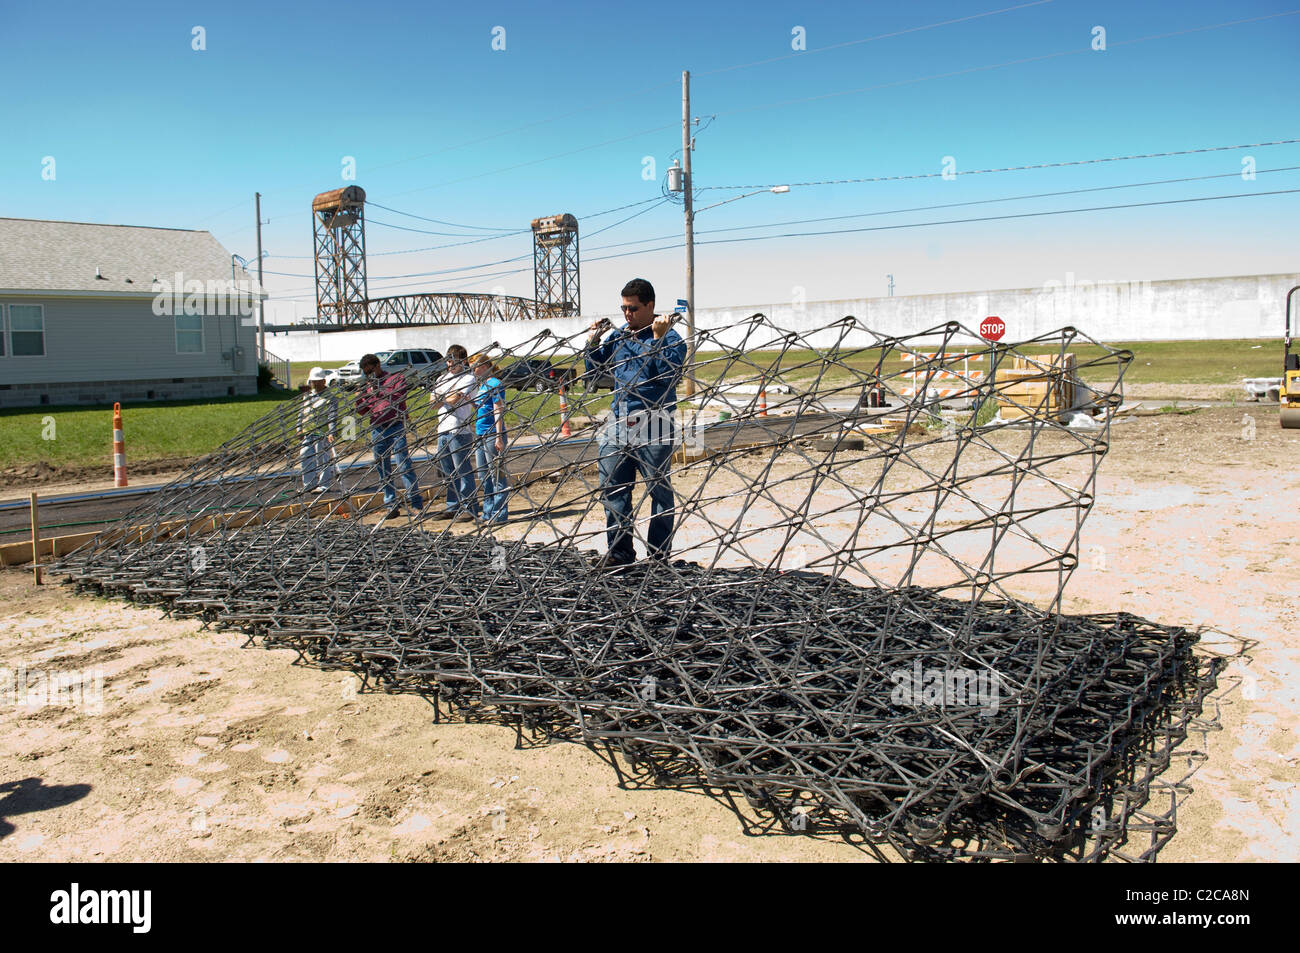 Molten lava rebar being used as reinforcement during first public street pervious concrete pour in 9th Ward, New - Stock Image